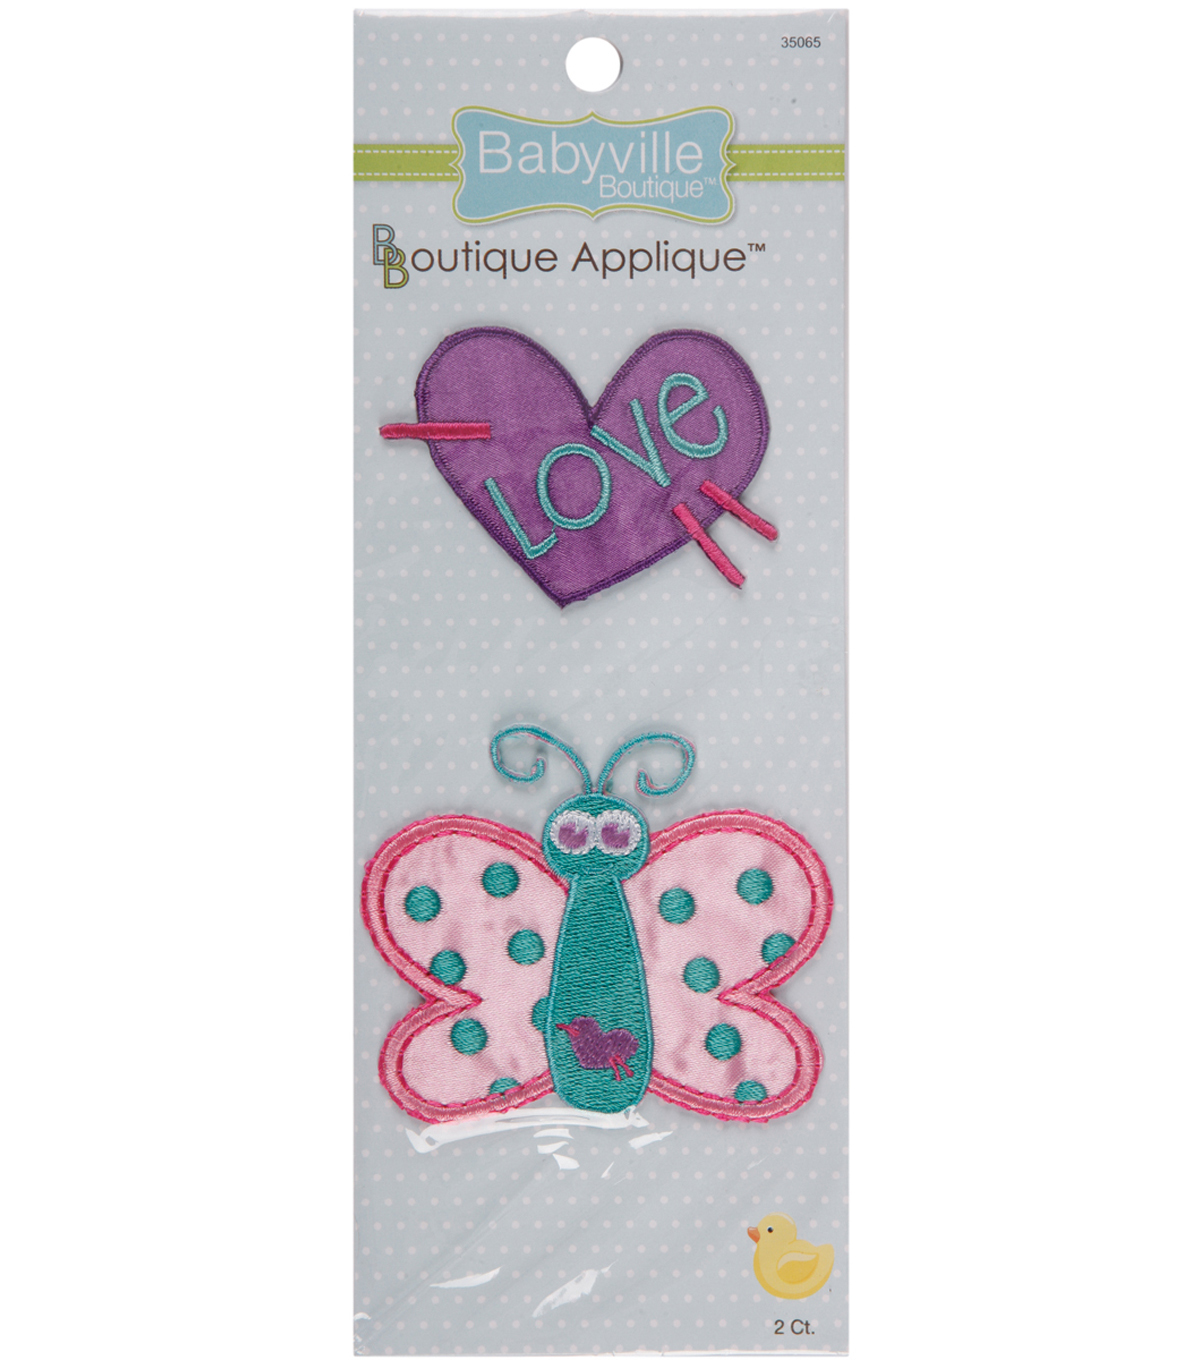 Babyville Boutique Appliques Butterfly And Heart 2pcs